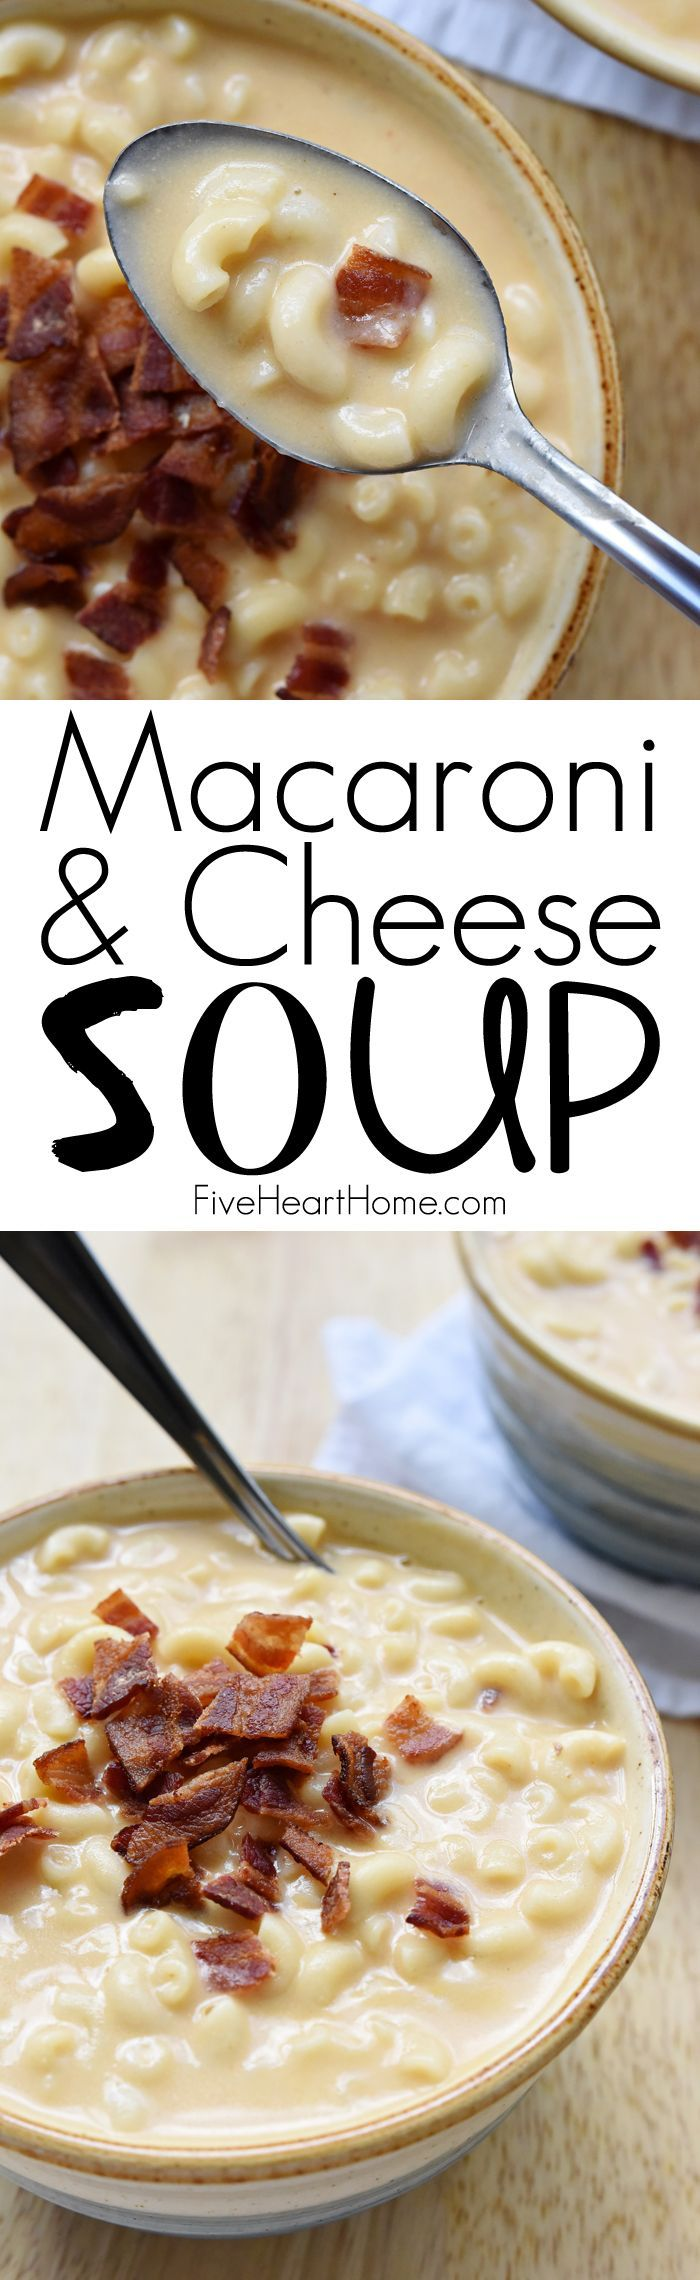 Macaroni & Cheese Soup ~ this creamy, cheesy, decadent recipe is topped with crispy bacon for the ultimate cool weather comfort food! | FiveHeartHome.com